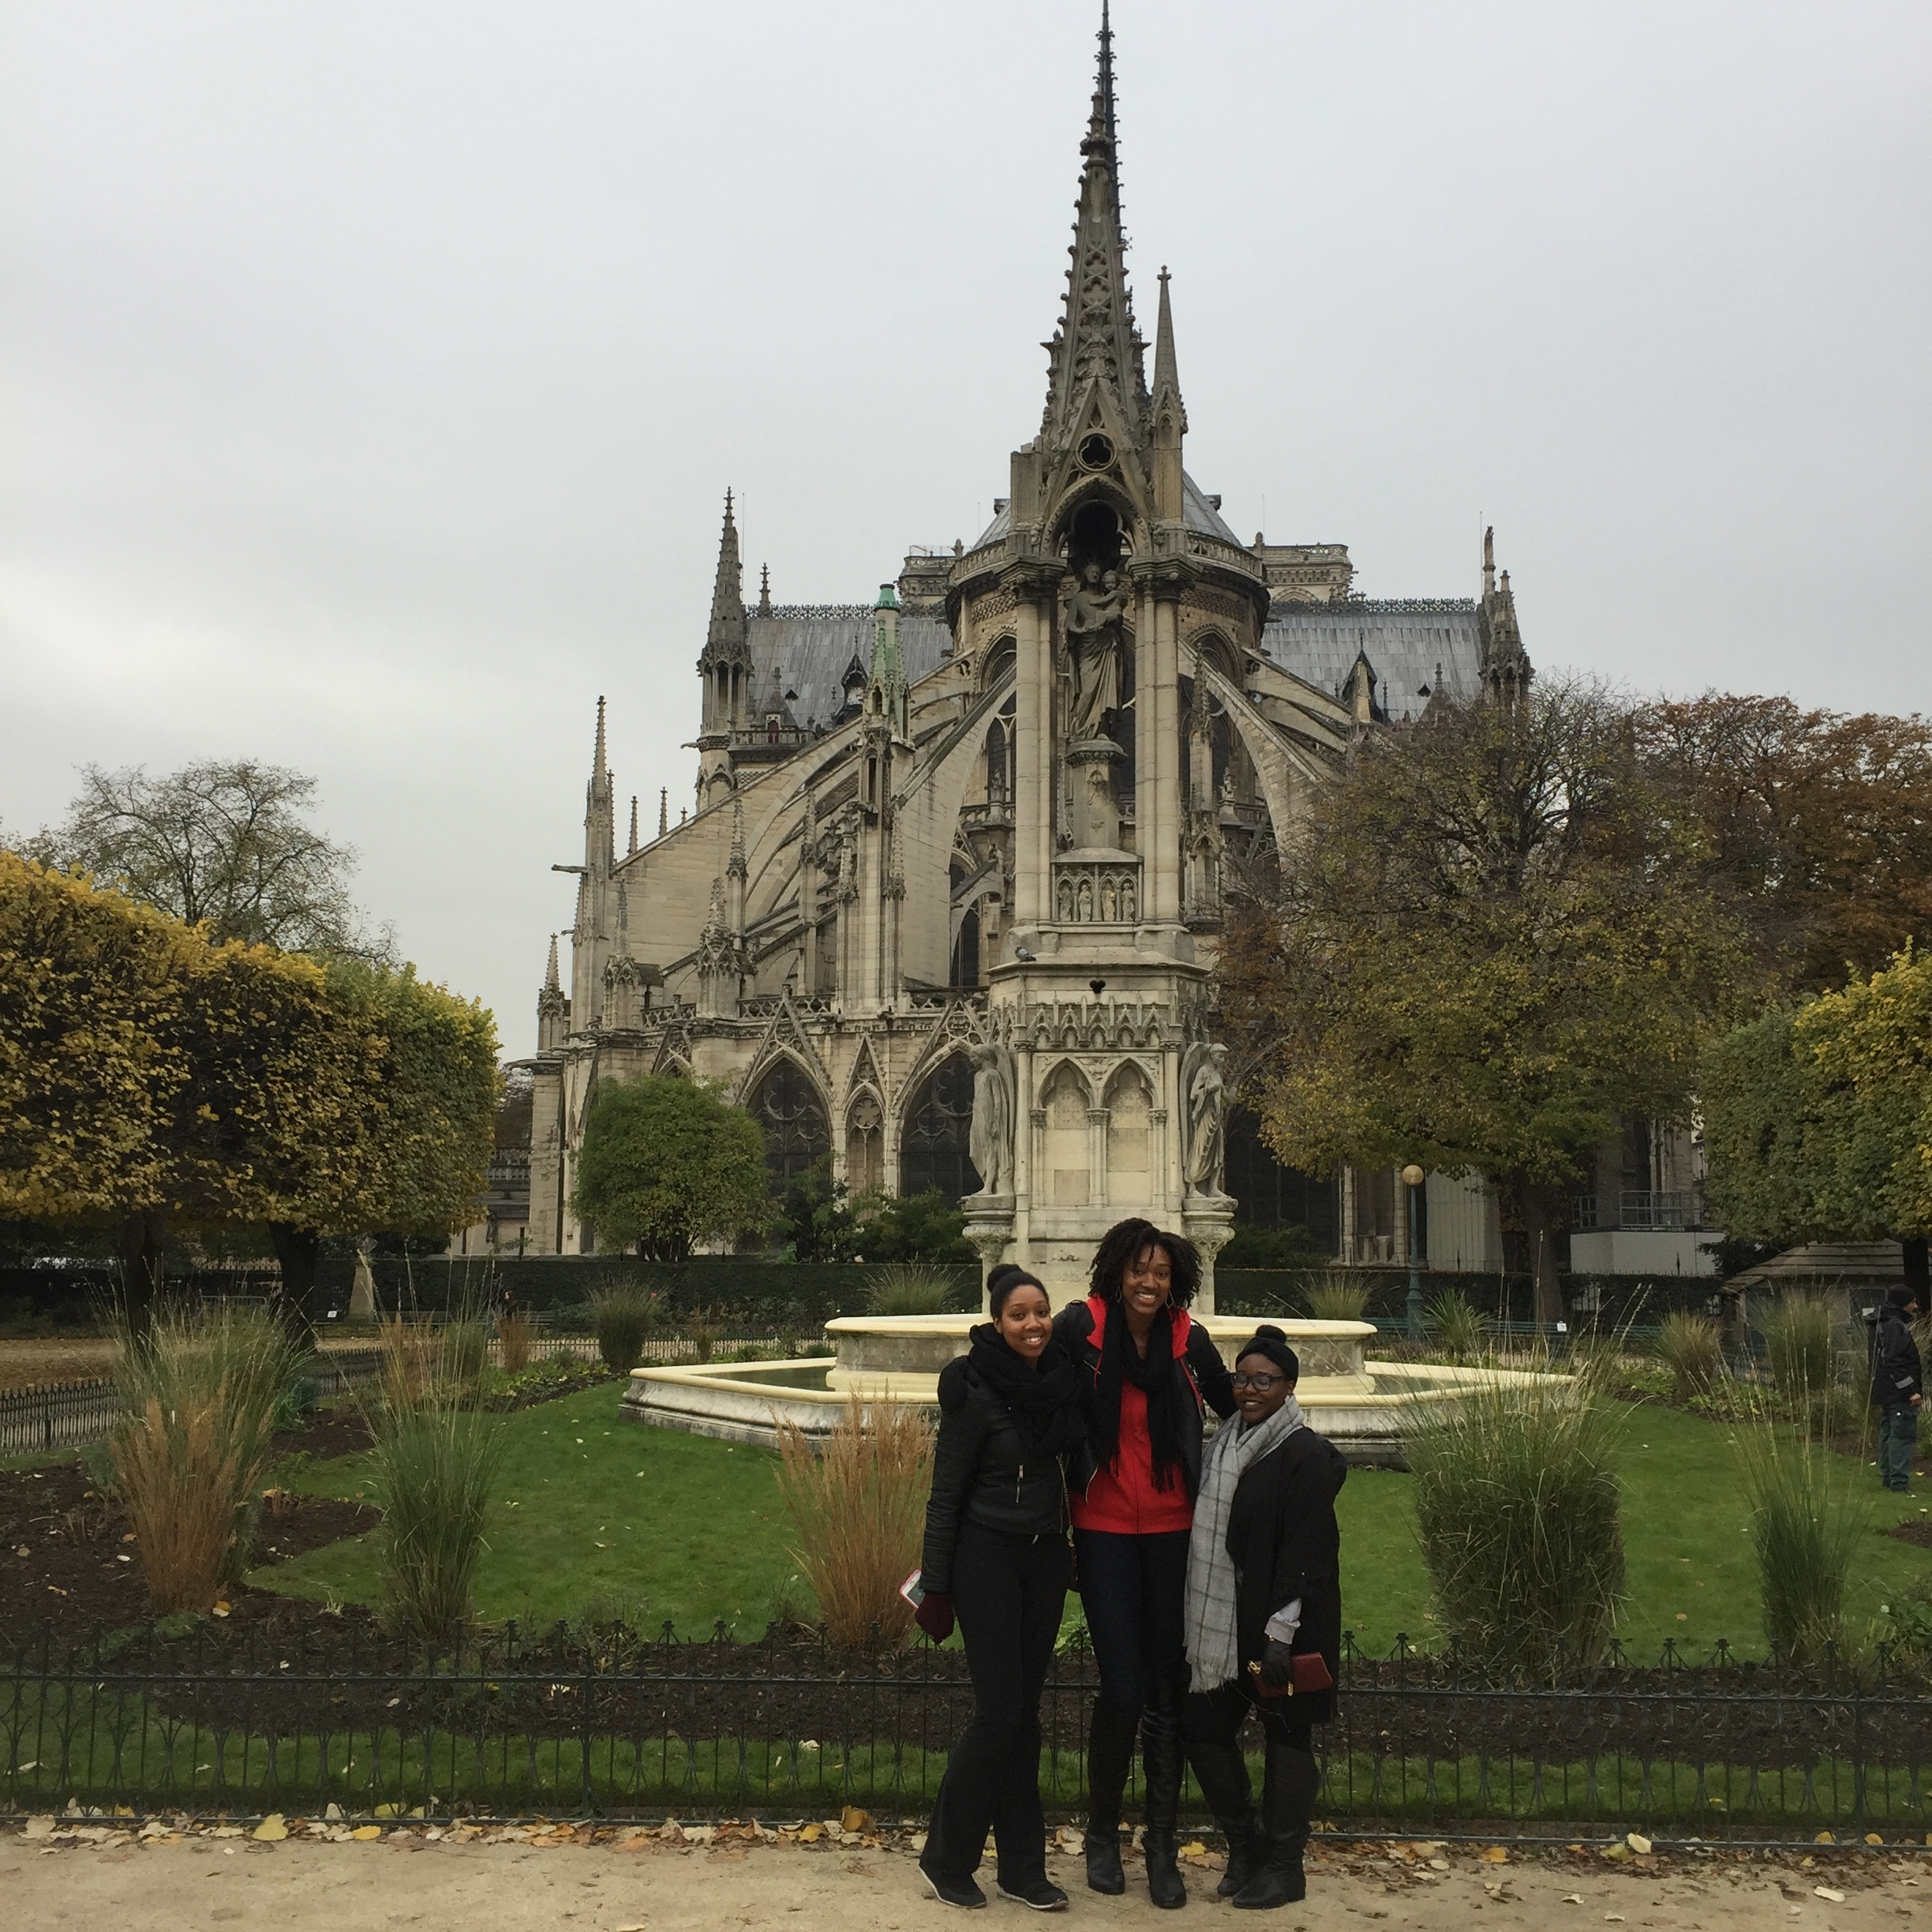 I'm so happy that these two can explore Paris with me! Also, I could stare at the architectural structure of Notre Dame all day long!